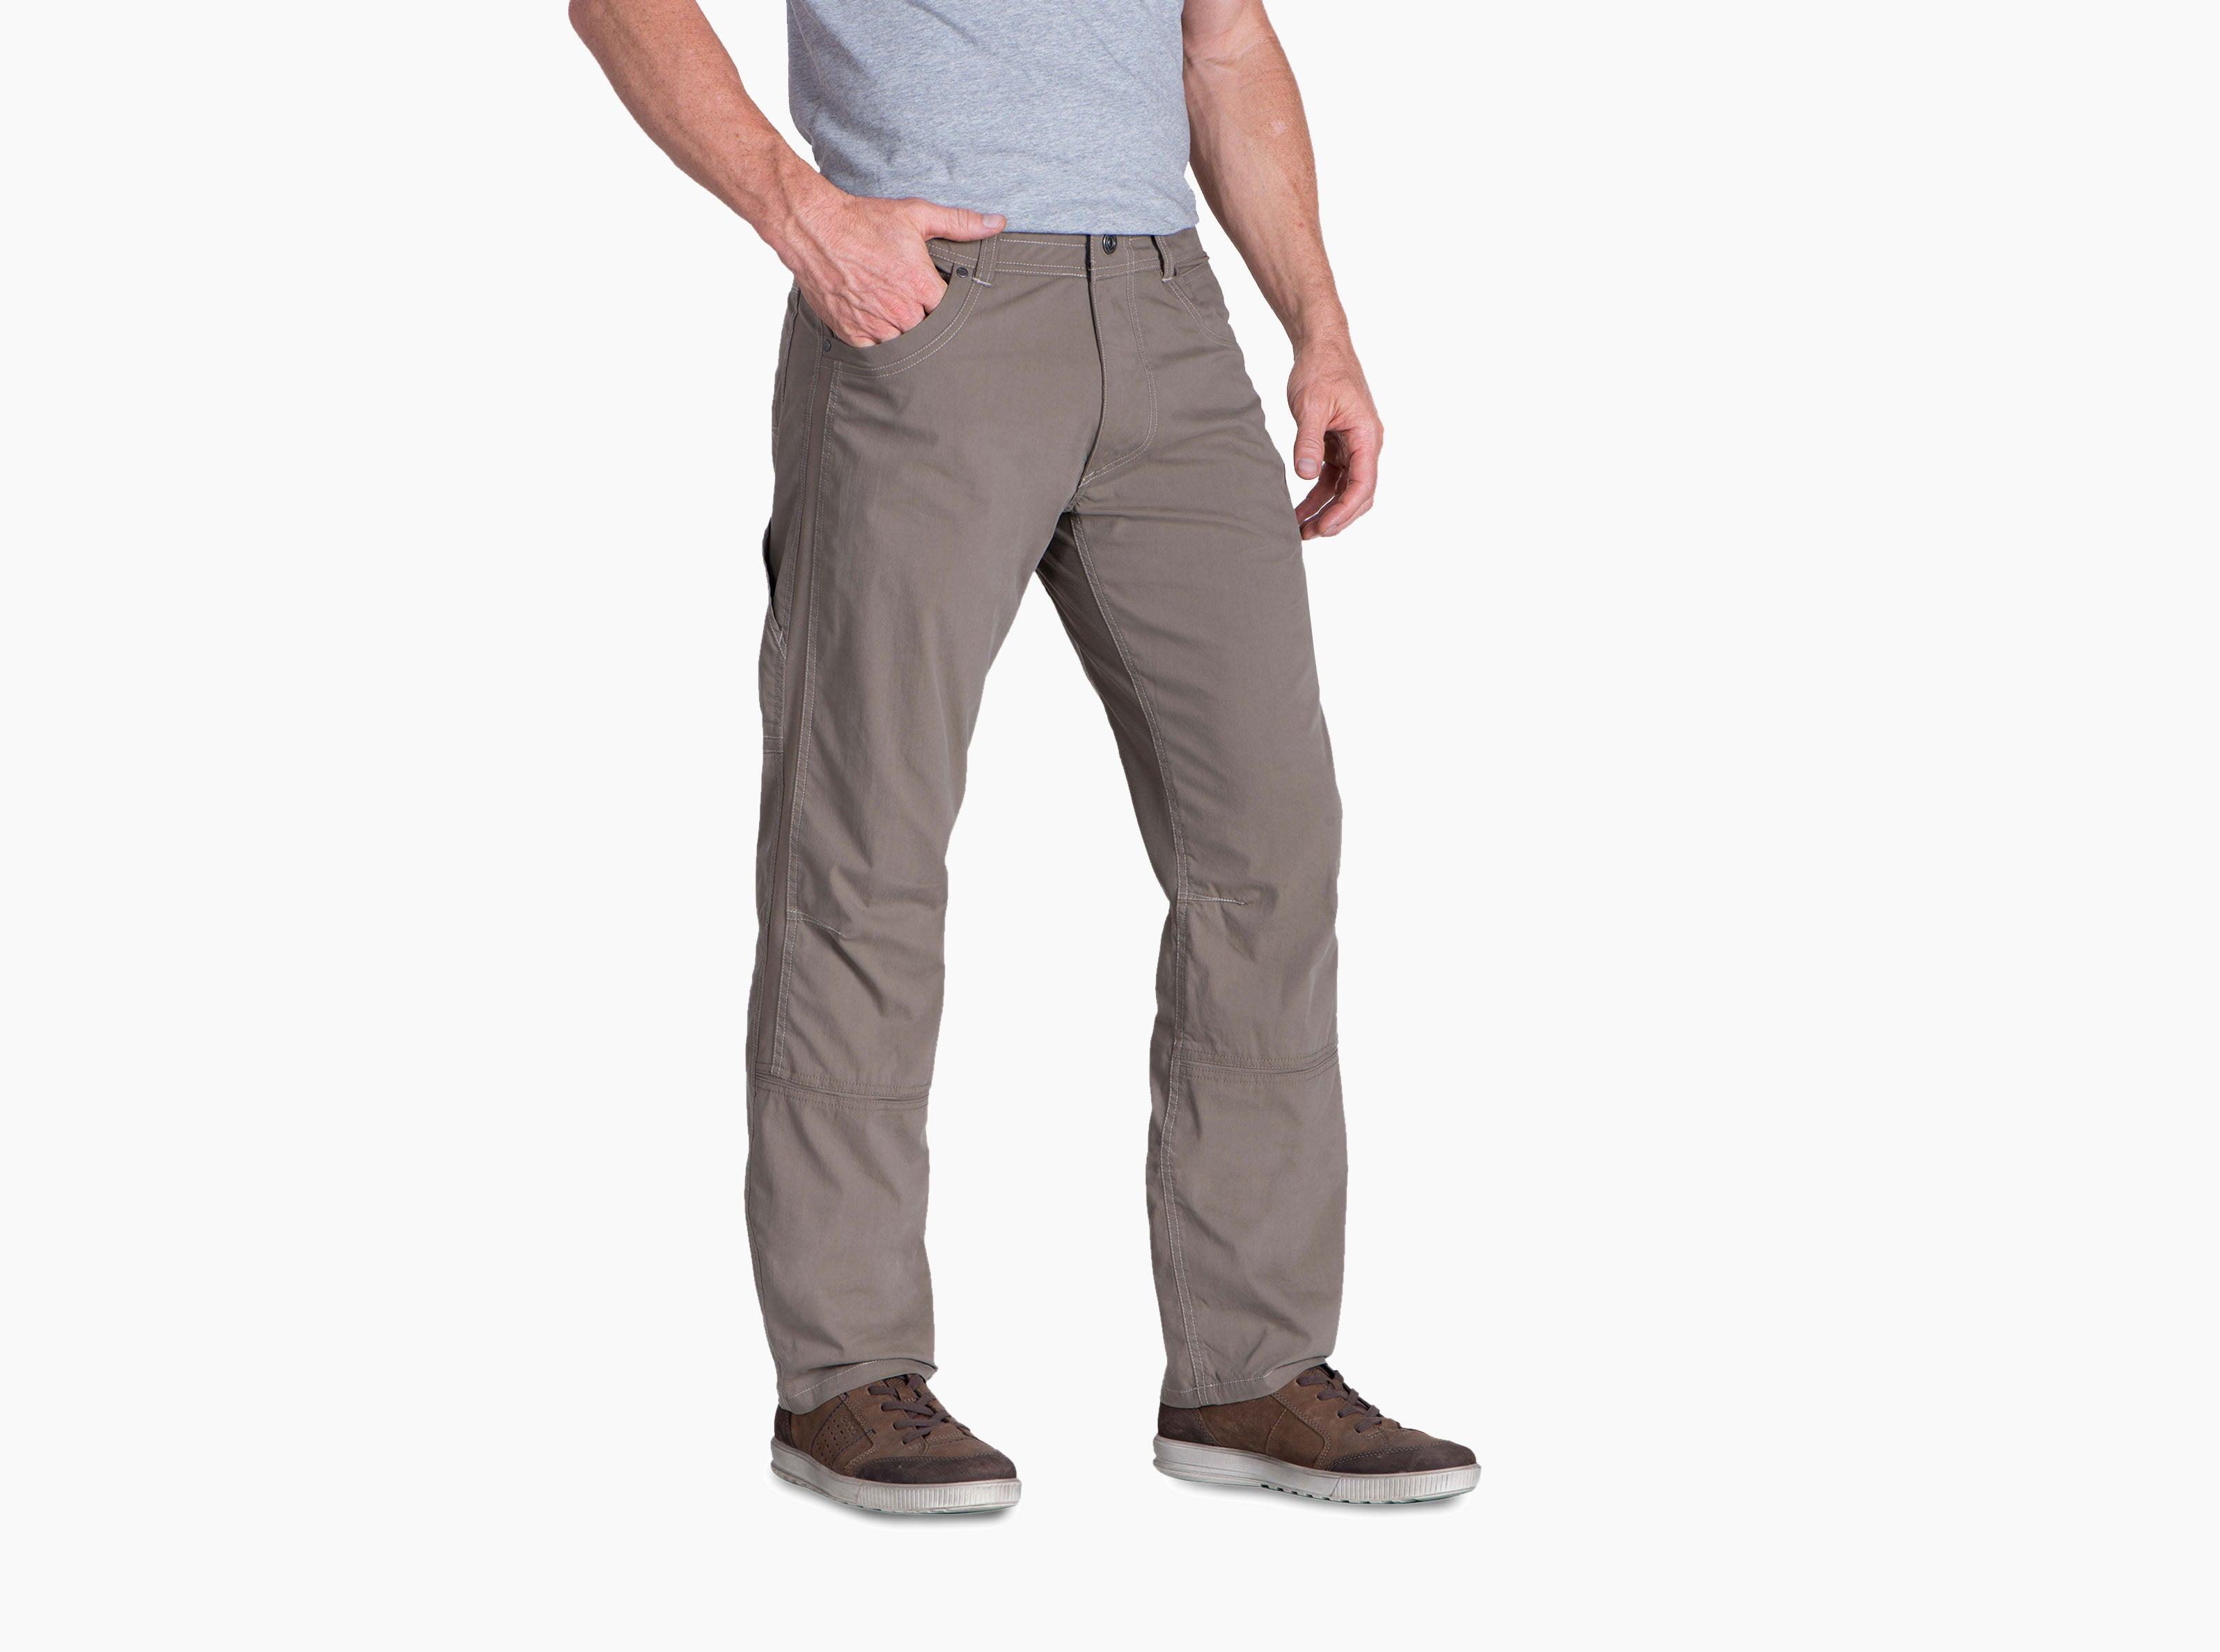 'Kuhl' Men's Radikl™ Pant - Walnut